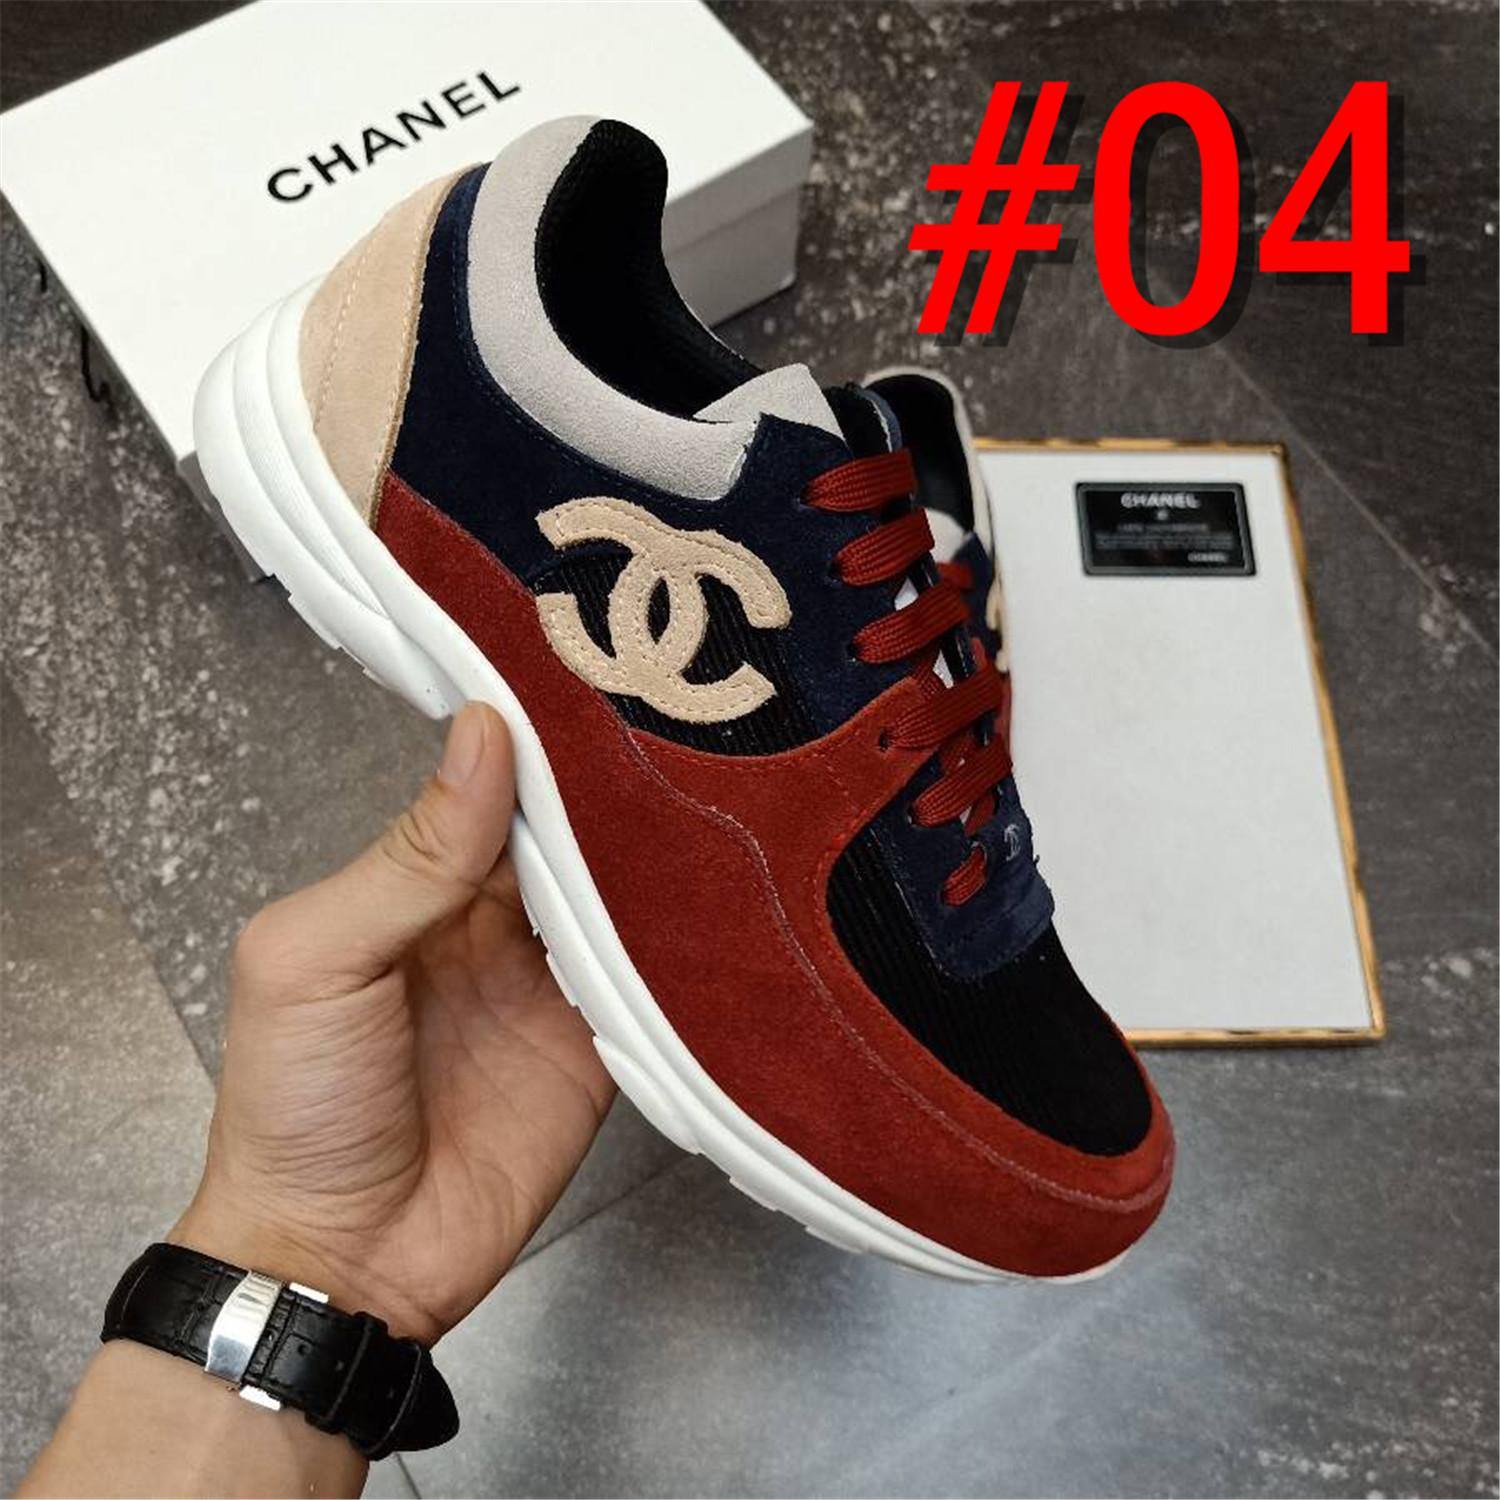 Men Casual Shoes Male Fashion Stitching Walking Shoes Man Breathable Sport  Runing Shoe Student Sneakers Footwear Autumn 2018 Dress Shoes Casual Shoes  Men ... c95dc2336b11